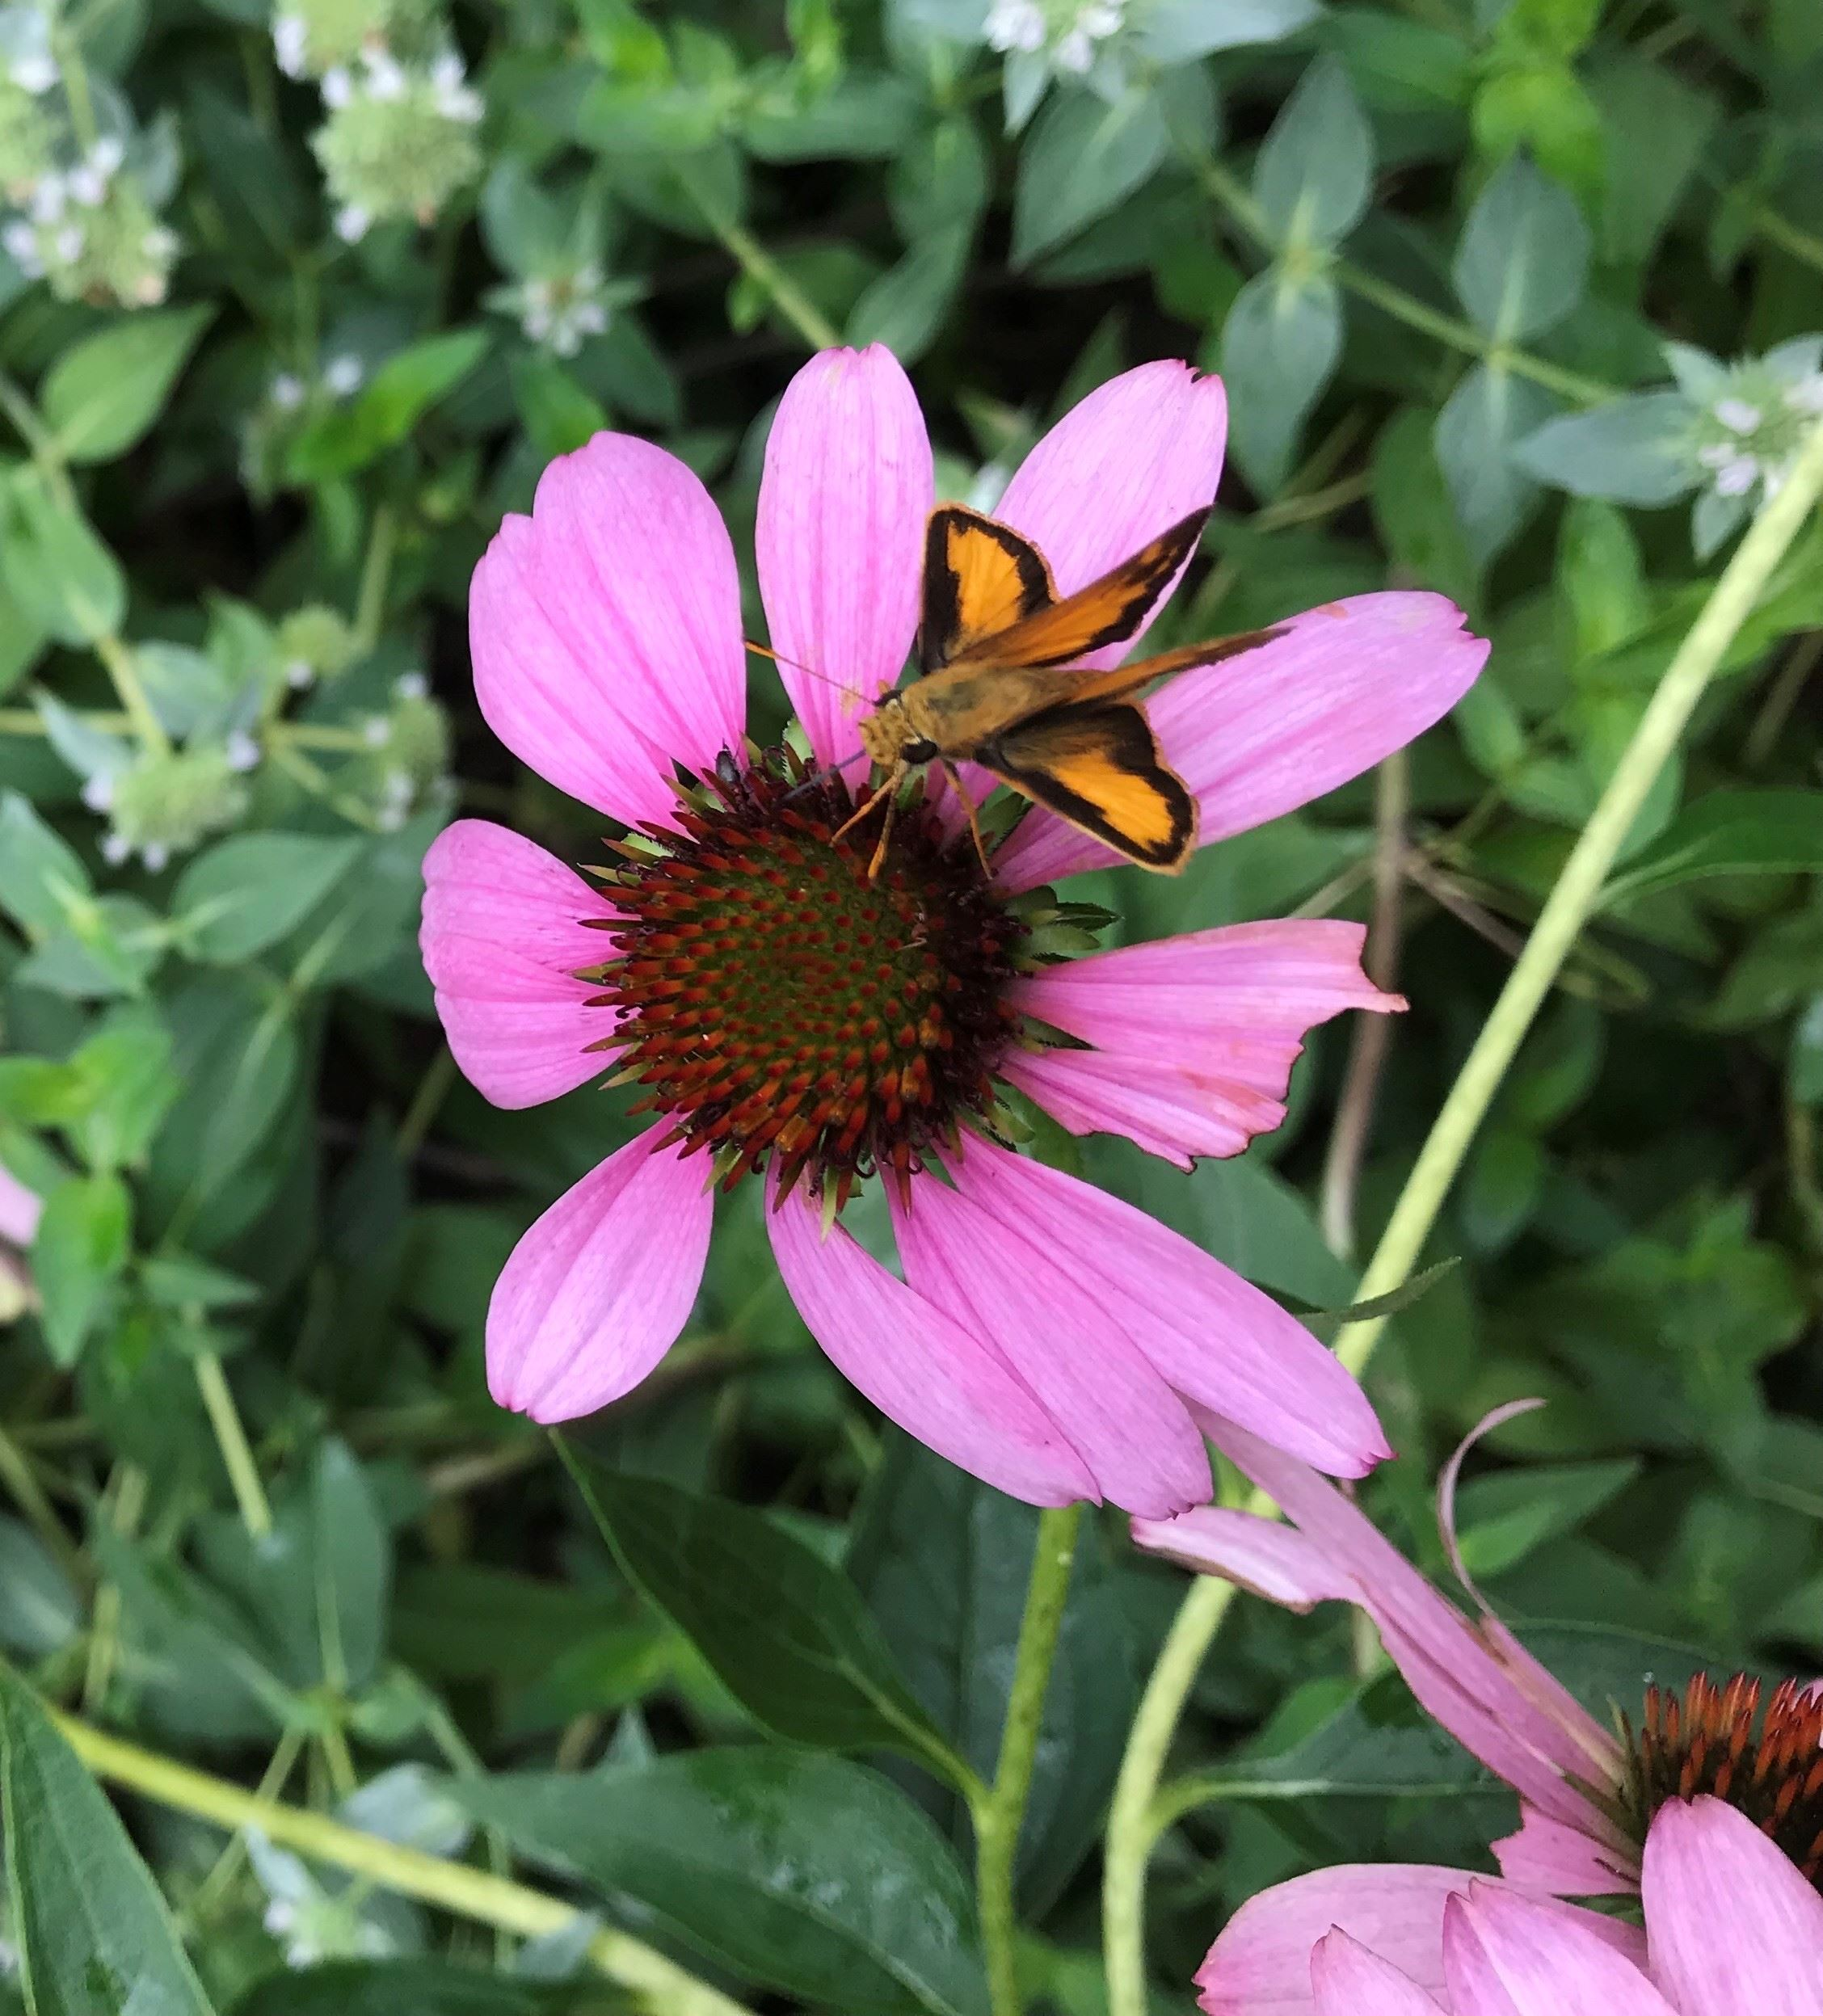 Pollinator Pathway Plant - Skipper Butterfly on Echinacea